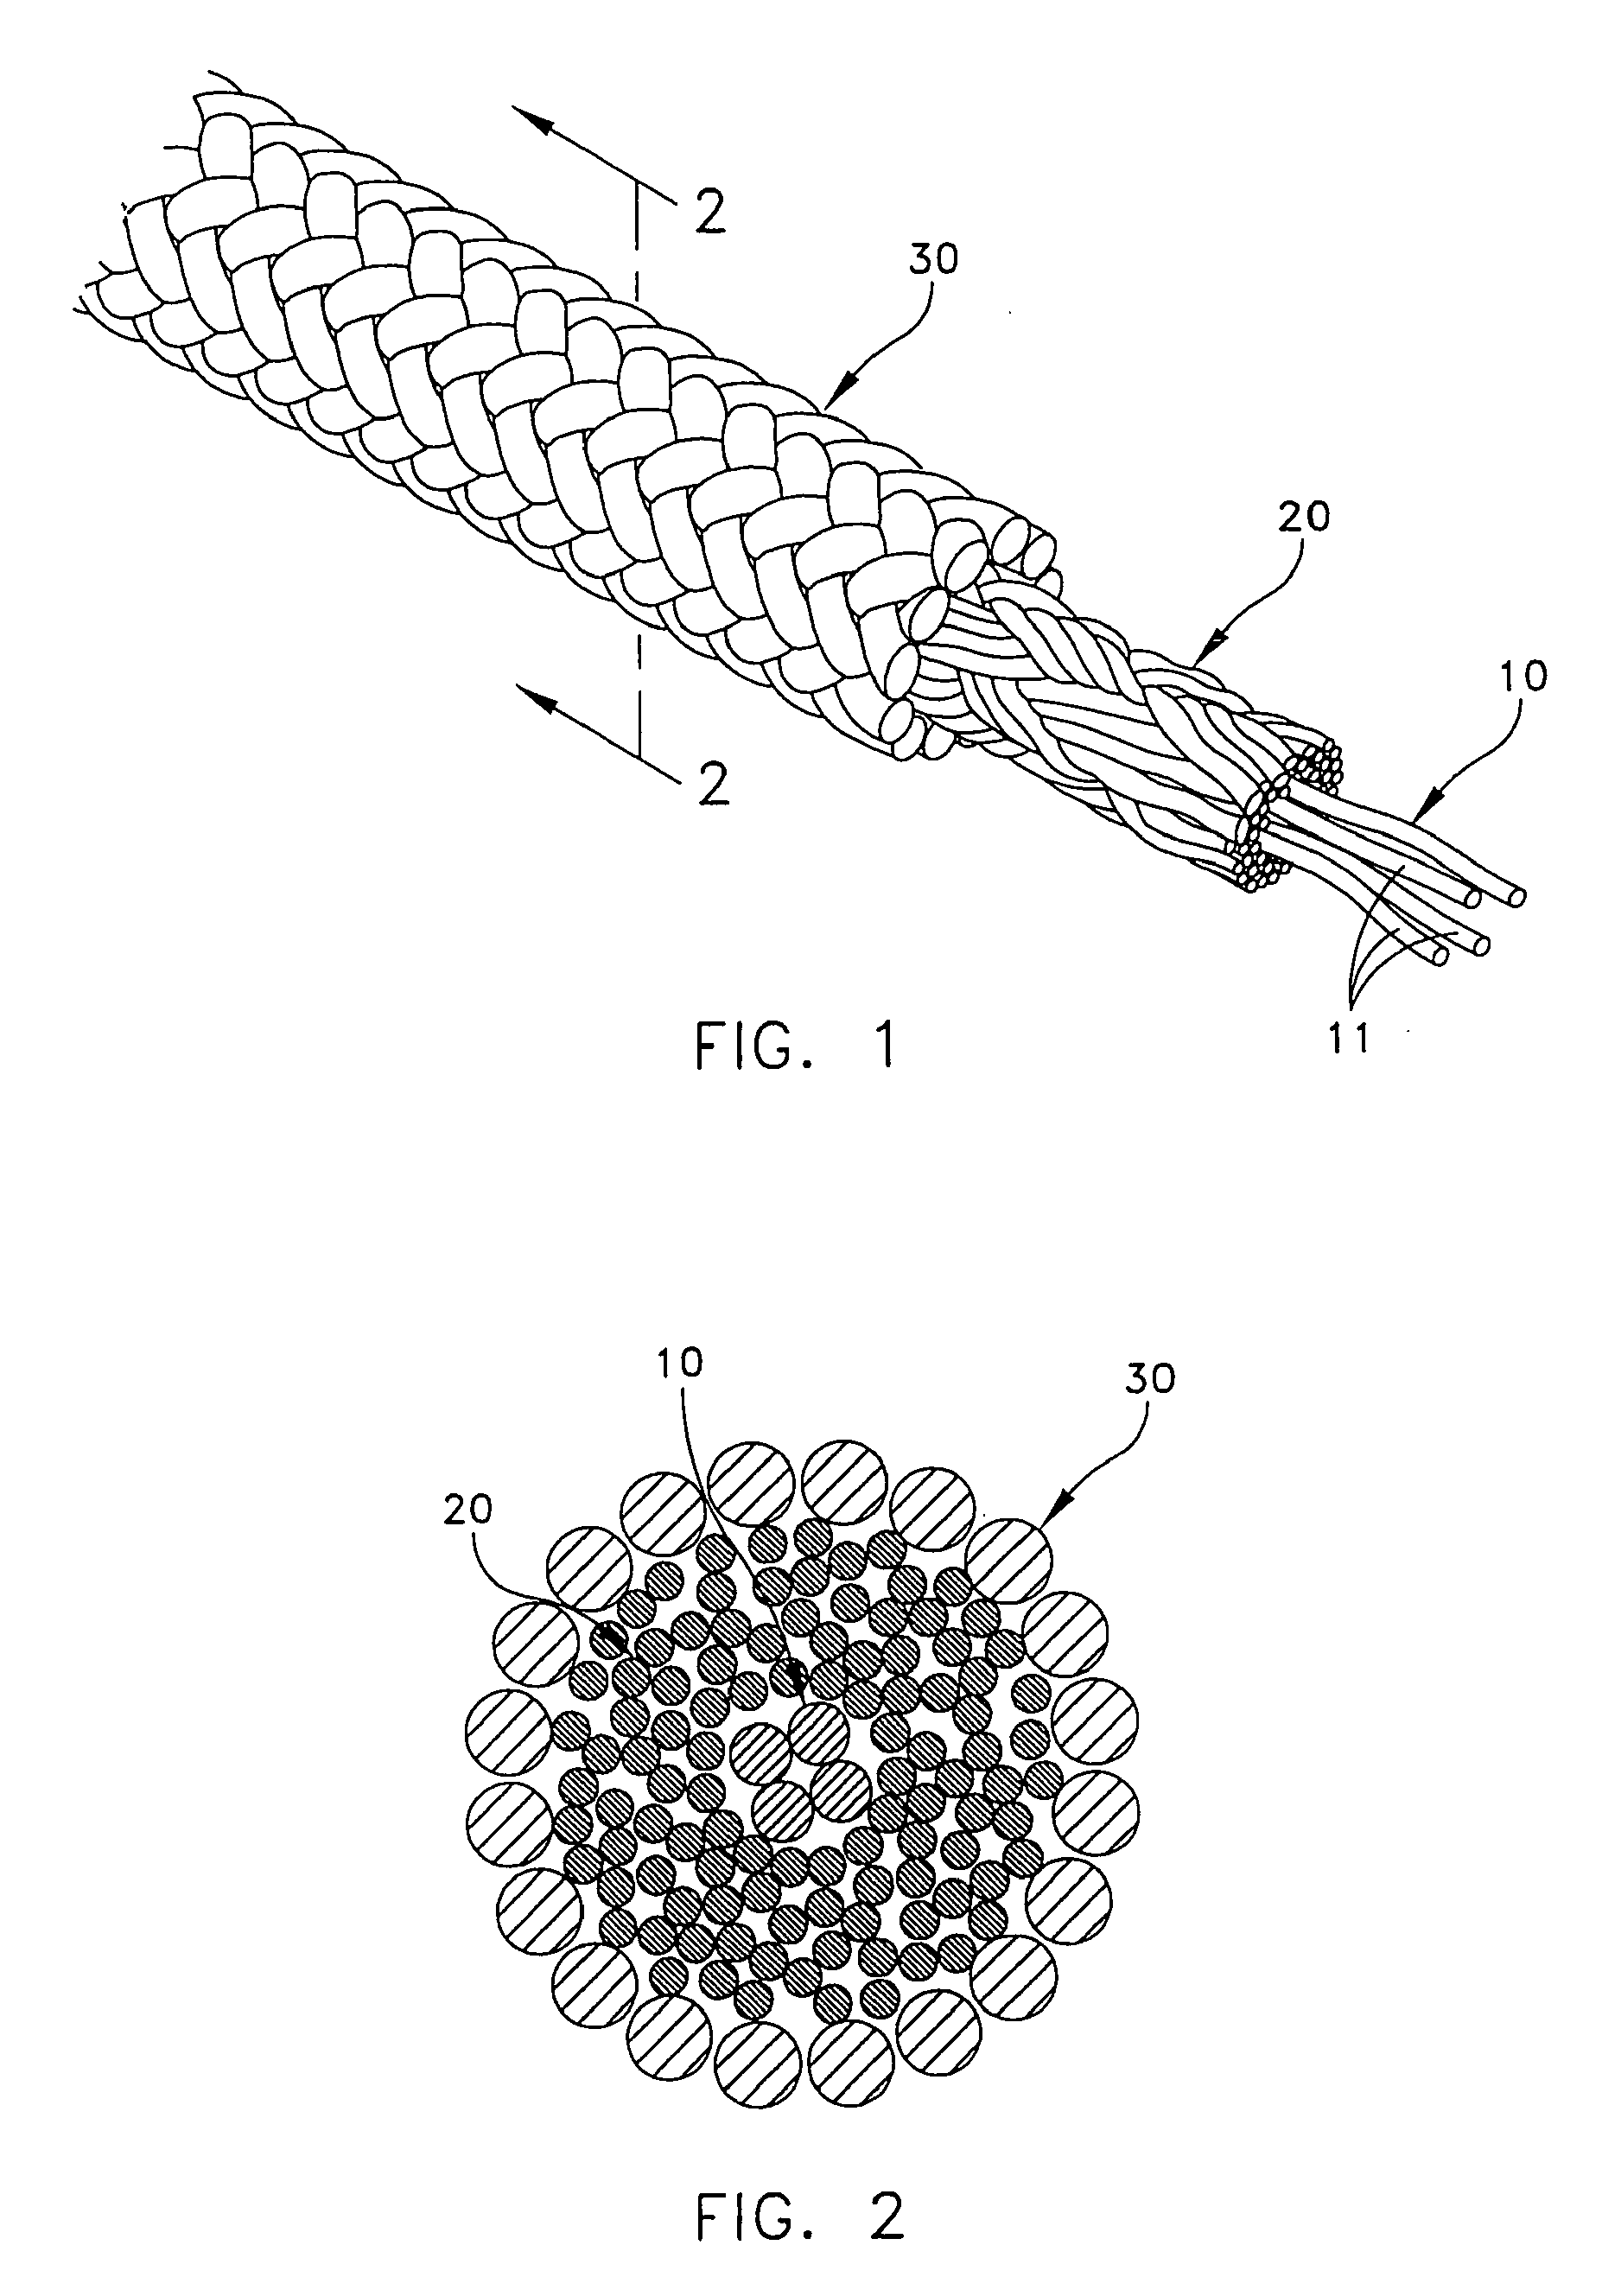 Drawn rope braided rope Patent Drawing layers comprising EP2028308A2